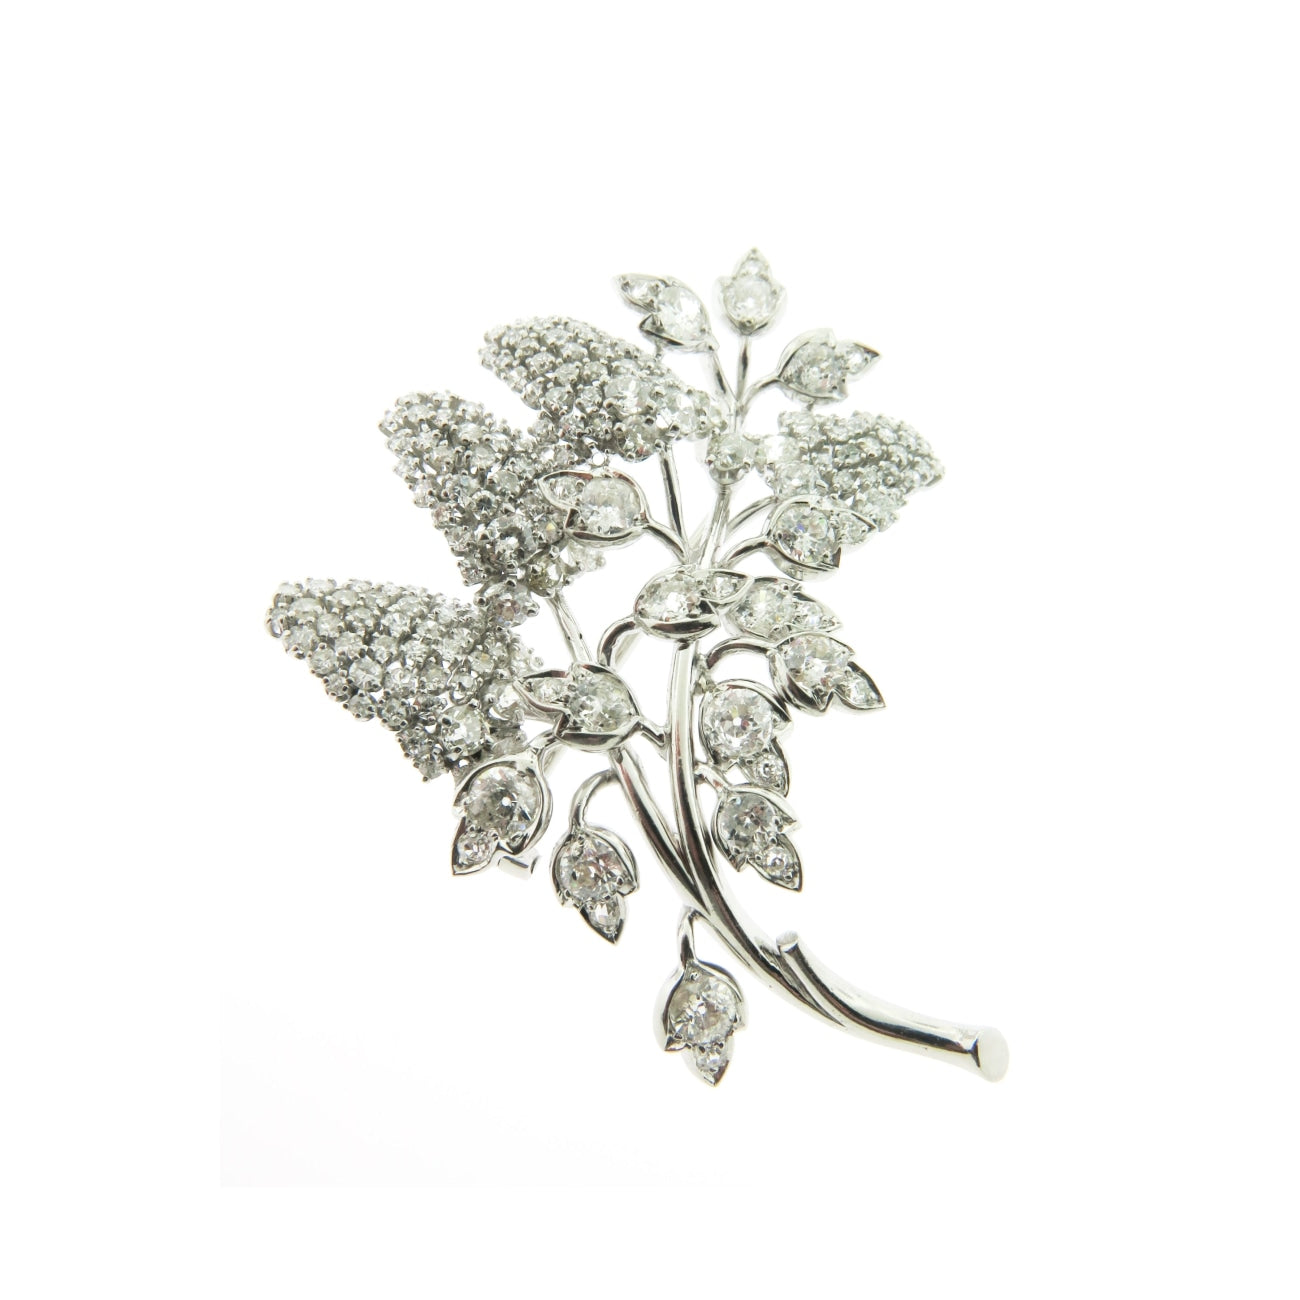 Estate Jewelry Estate Jewelry - Grape Vine Diamond White Gold Brooch | Manfredi Jewels